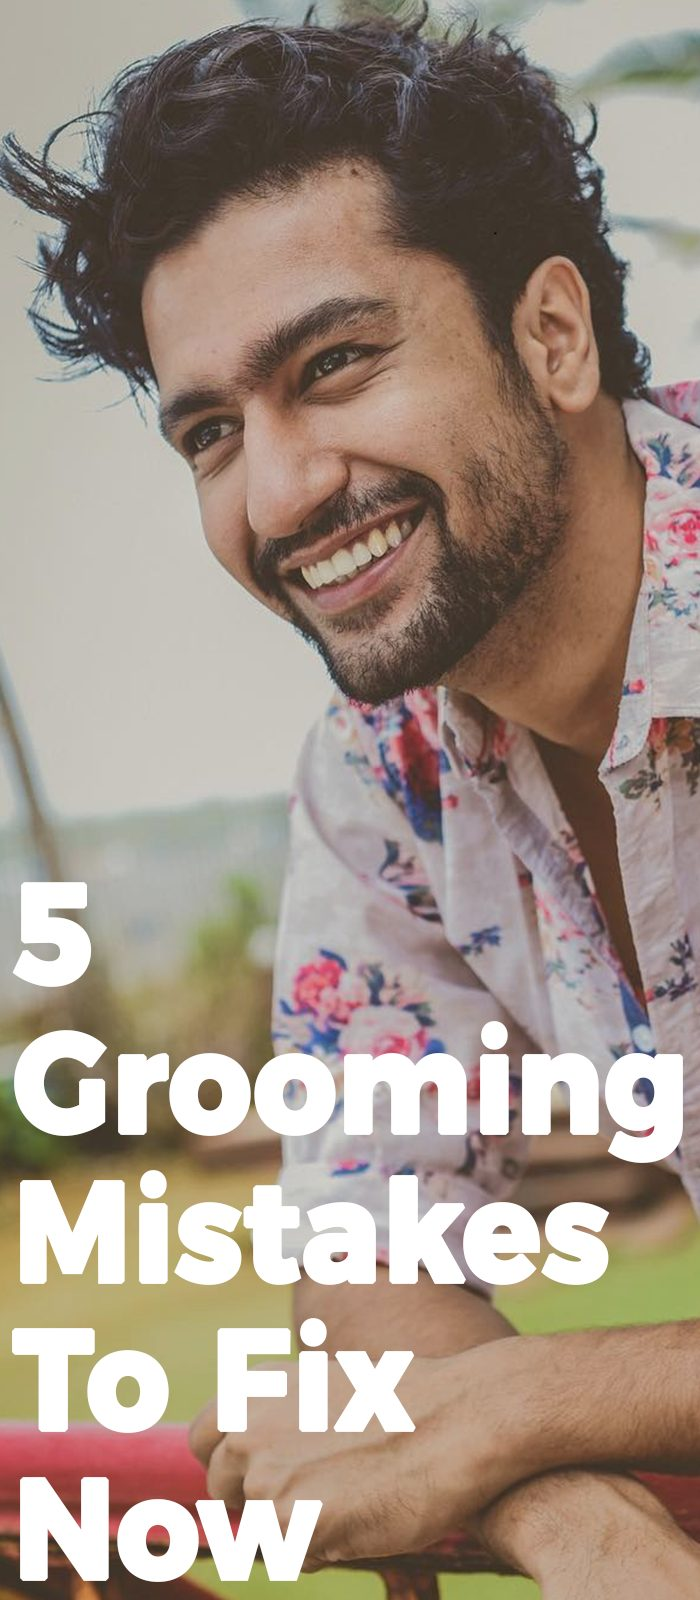 5 Grooming Mistakes To Fix Now!